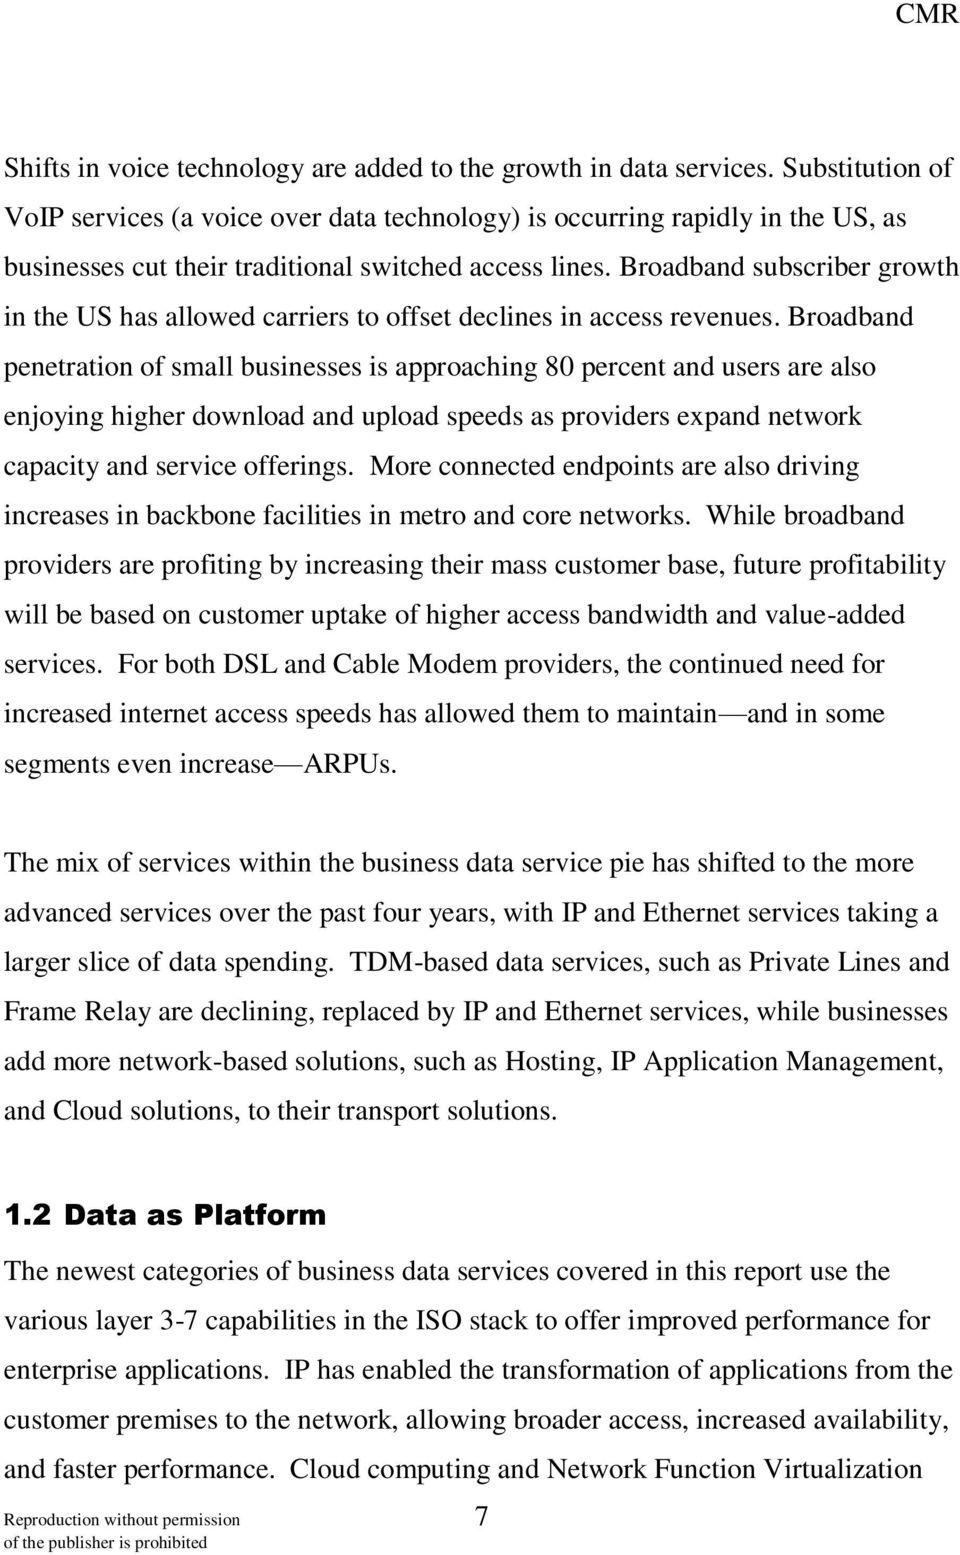 Broadband subscriber growth in the US has allowed carriers to offset declines in access revenues.